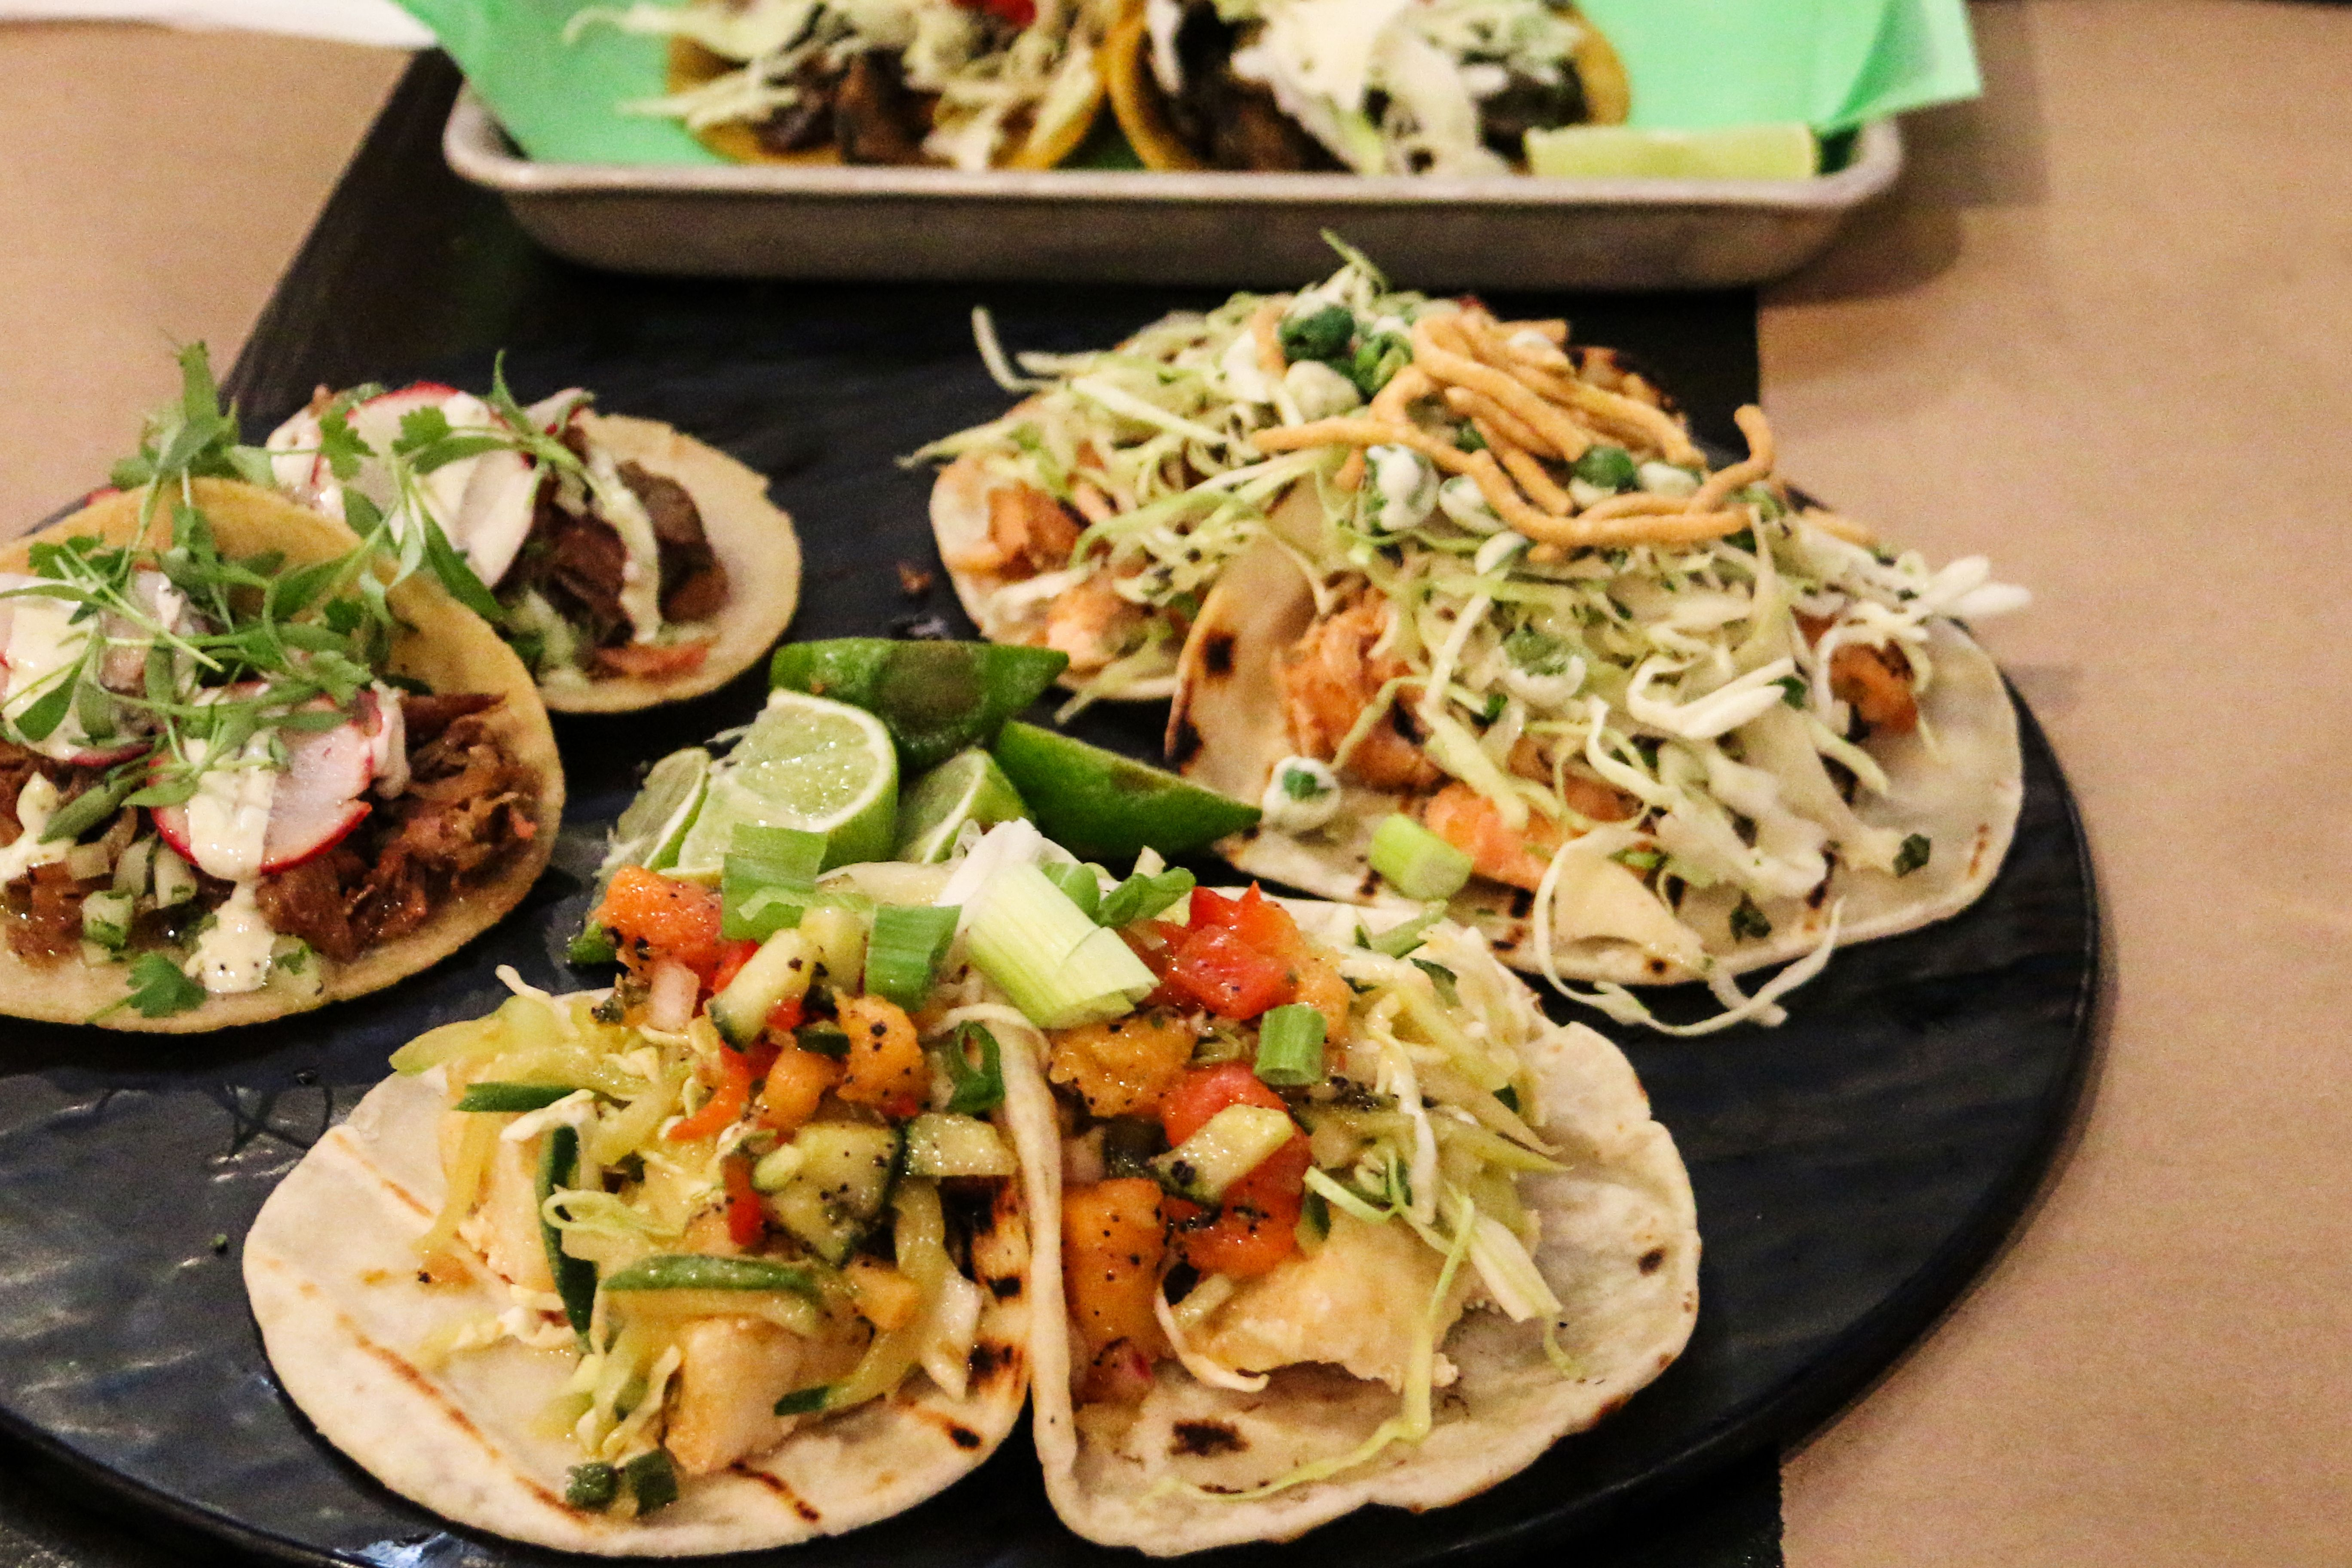 International Cuisine In Albany Ny In 2020 Food Mexican Street Food International Cuisine